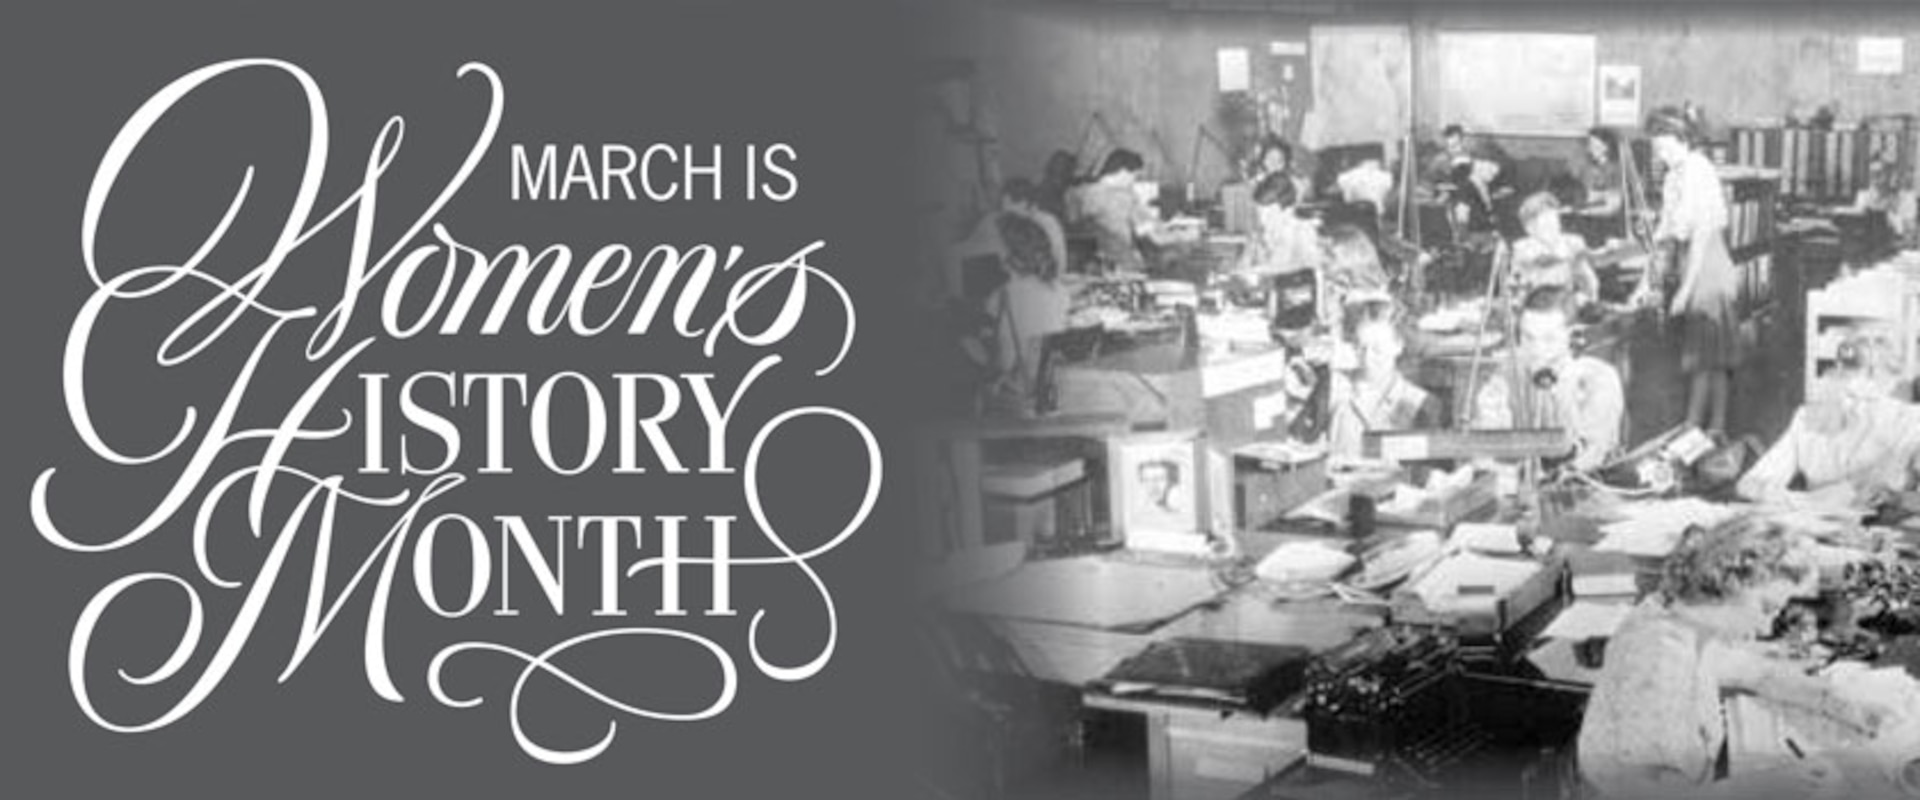 March is Womens History Month